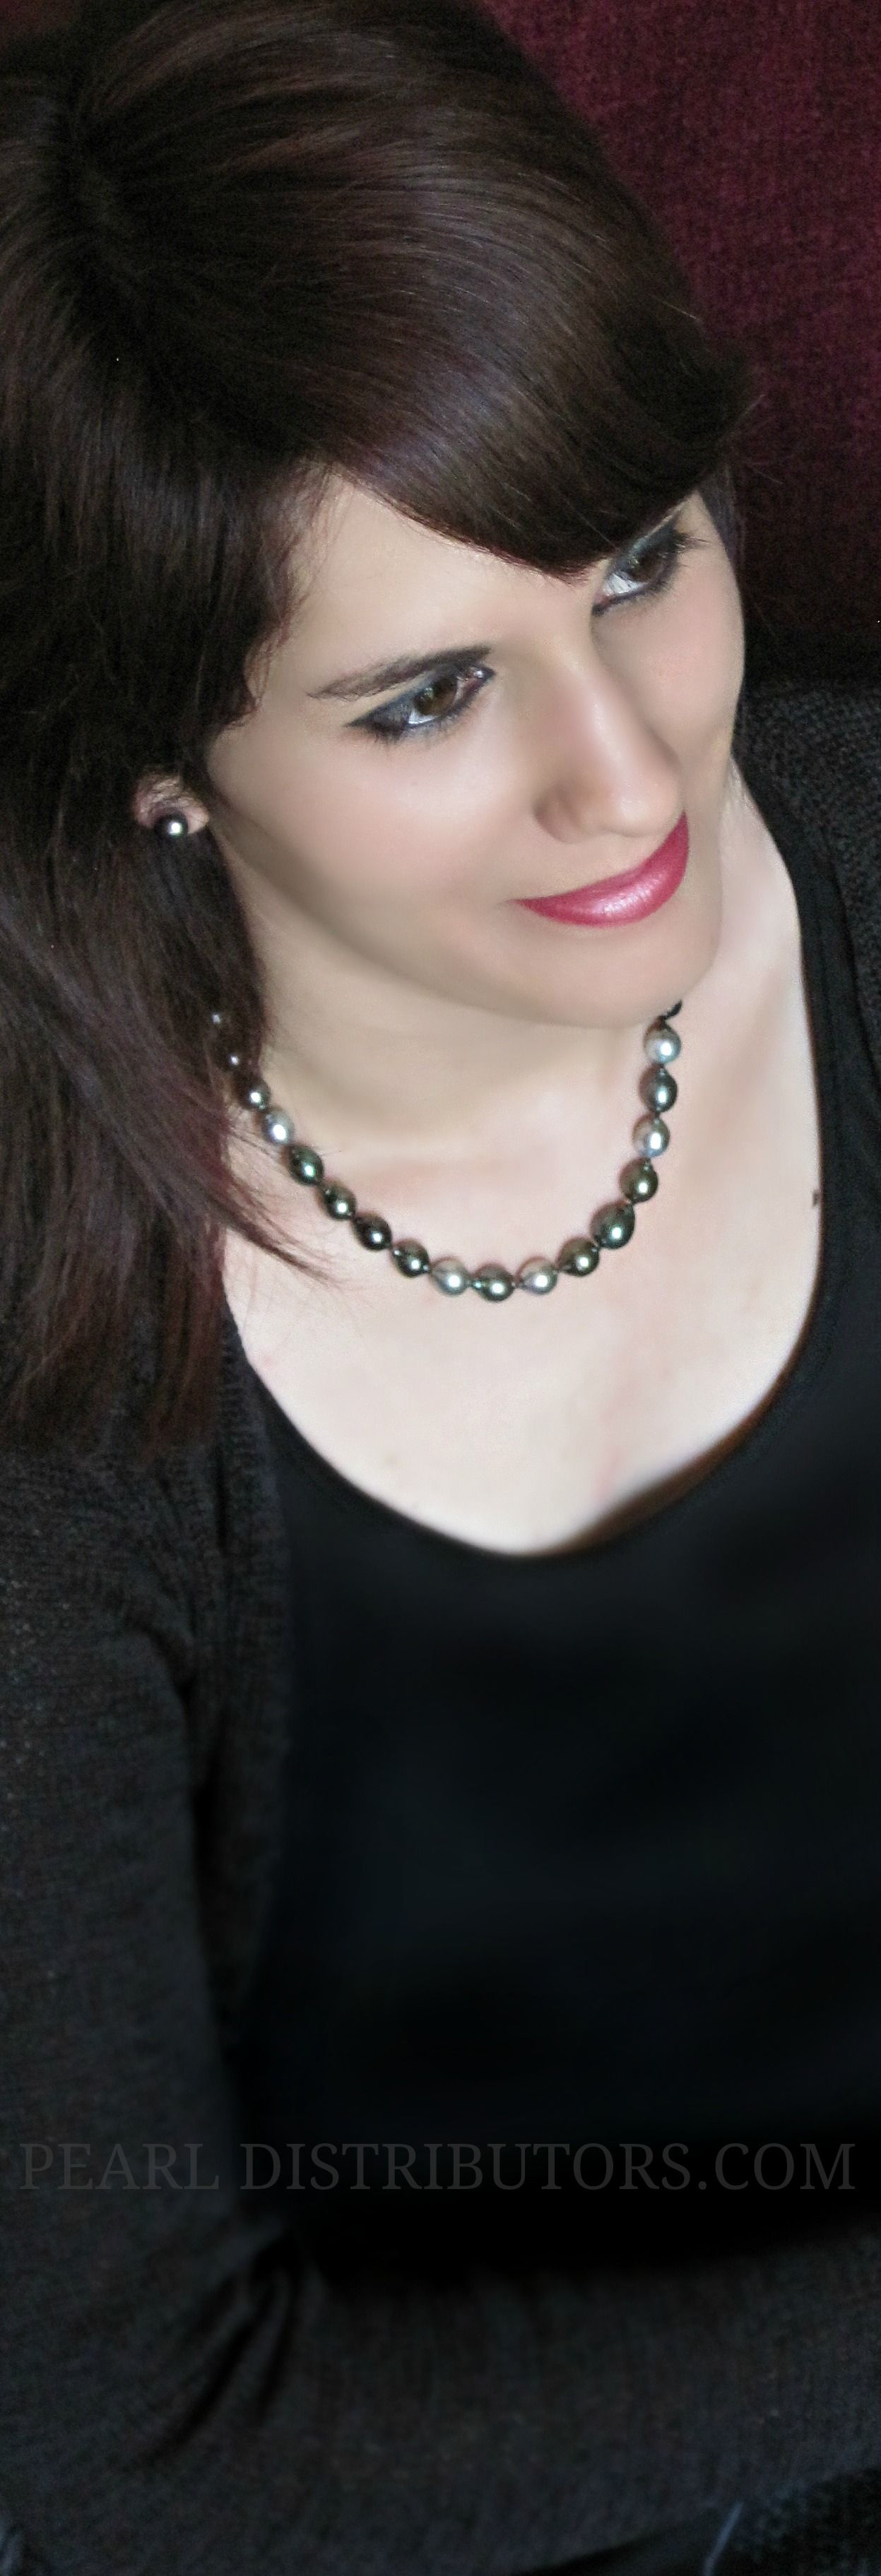 #Baroque #Tahitian #pearl #necklace http://www.pearldistributors.com/black-tahitian_pearl-necklaces/